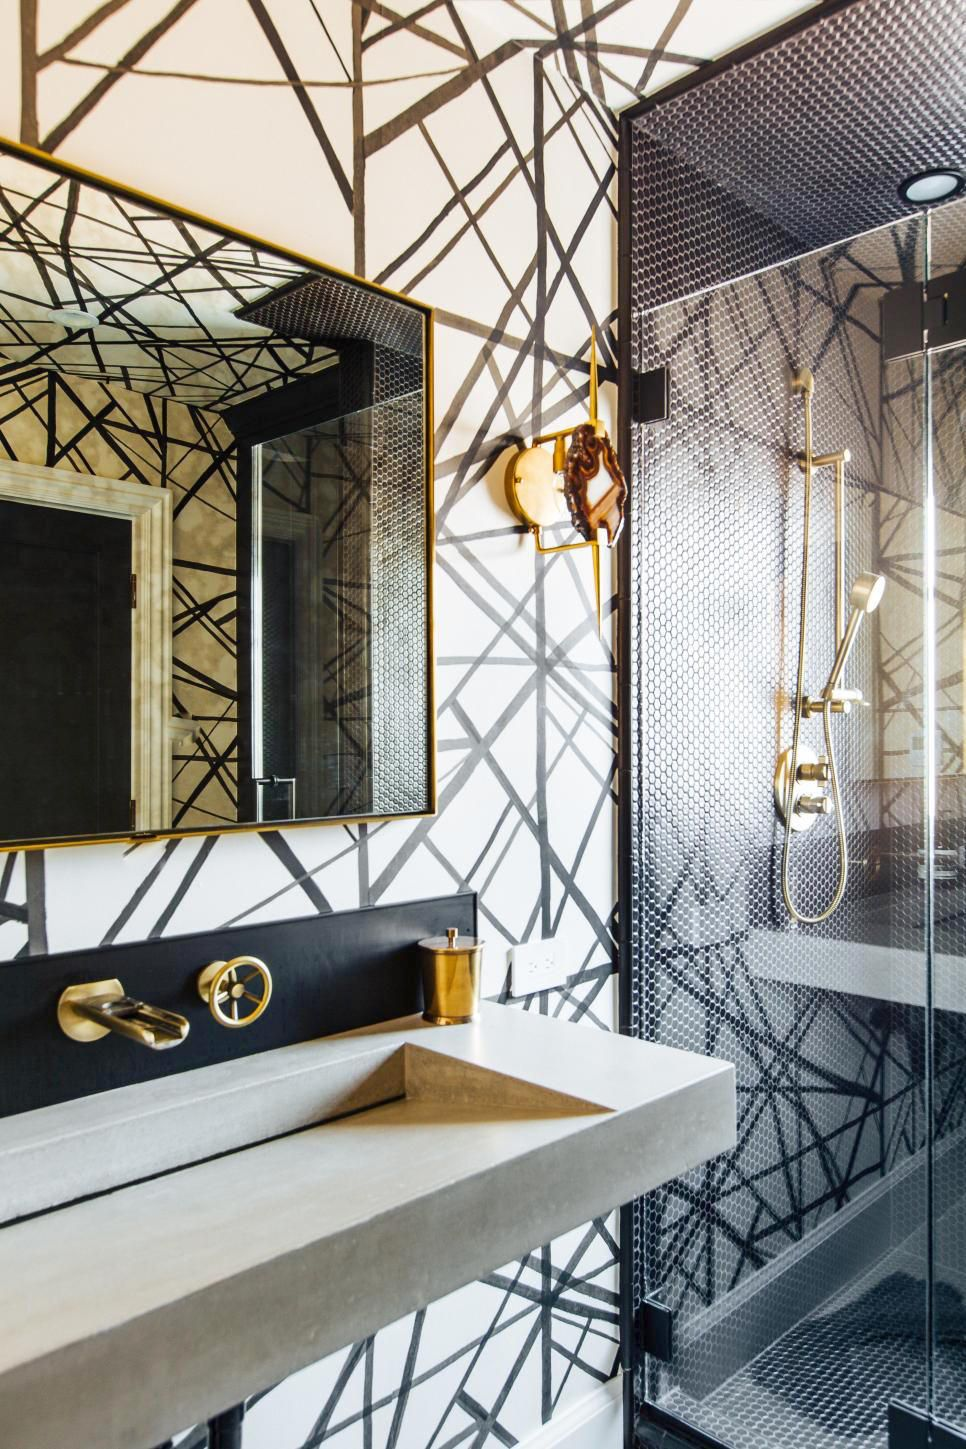 This Modern Bathroom Is Fitted With Kelly Wearstler Wallpaper And Cool Agate Sconces